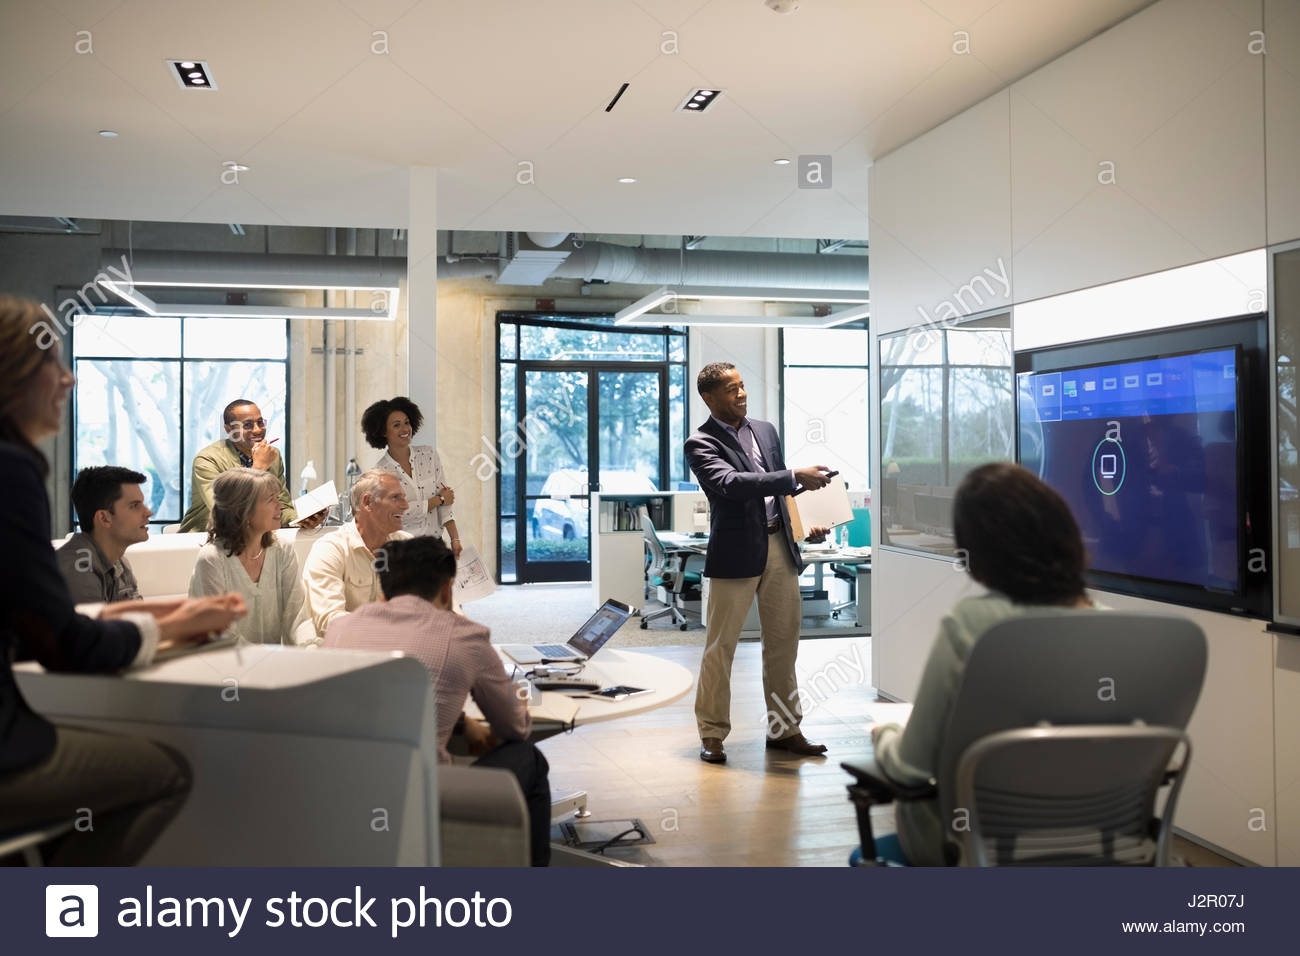 Businessman leading audio visual presentation in conference room meeting - Stock Image